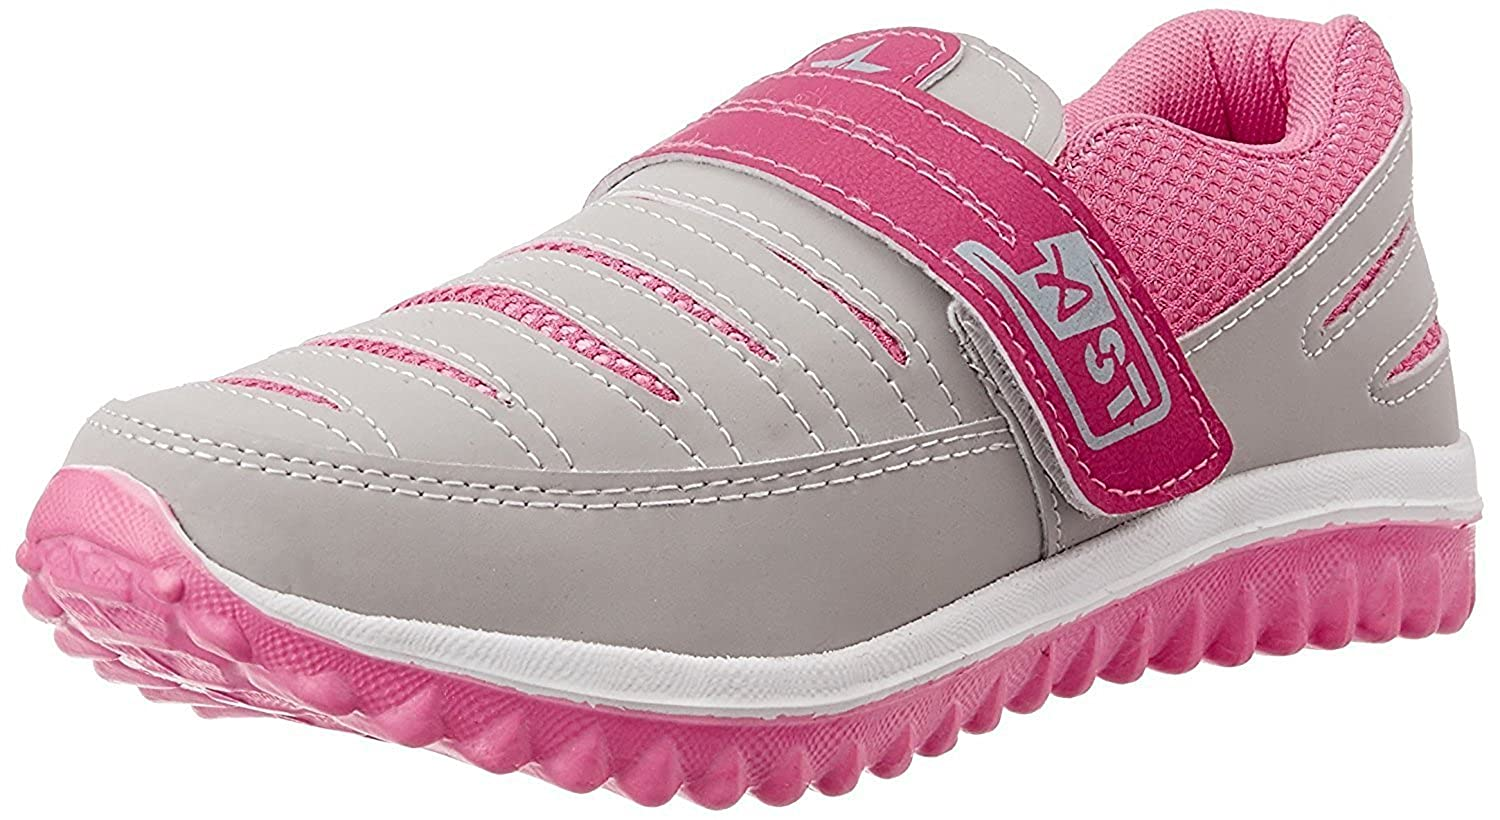 SHOES T20 Women's Grey & Pink Running Shoes(5)